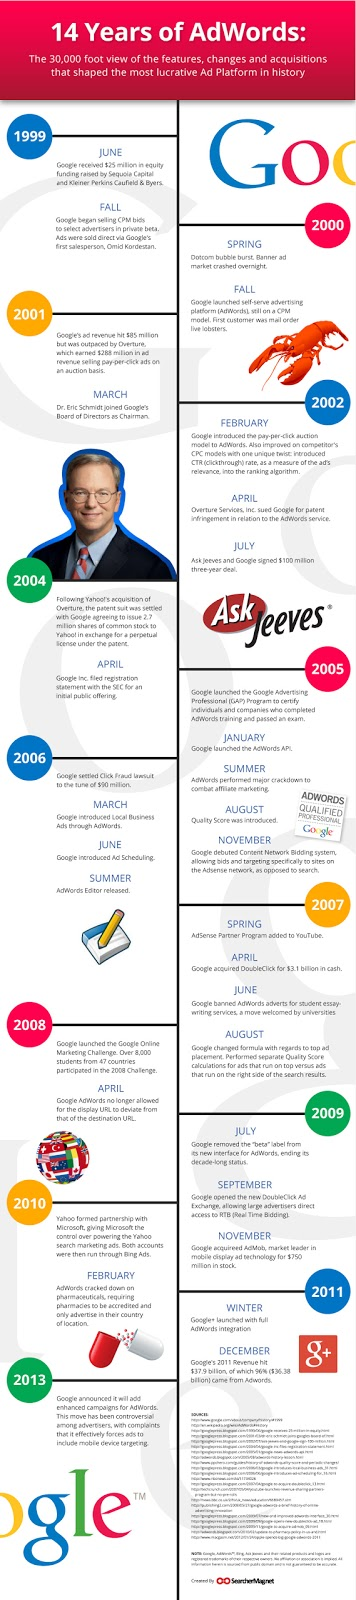 14 Years of AdWords Infographic